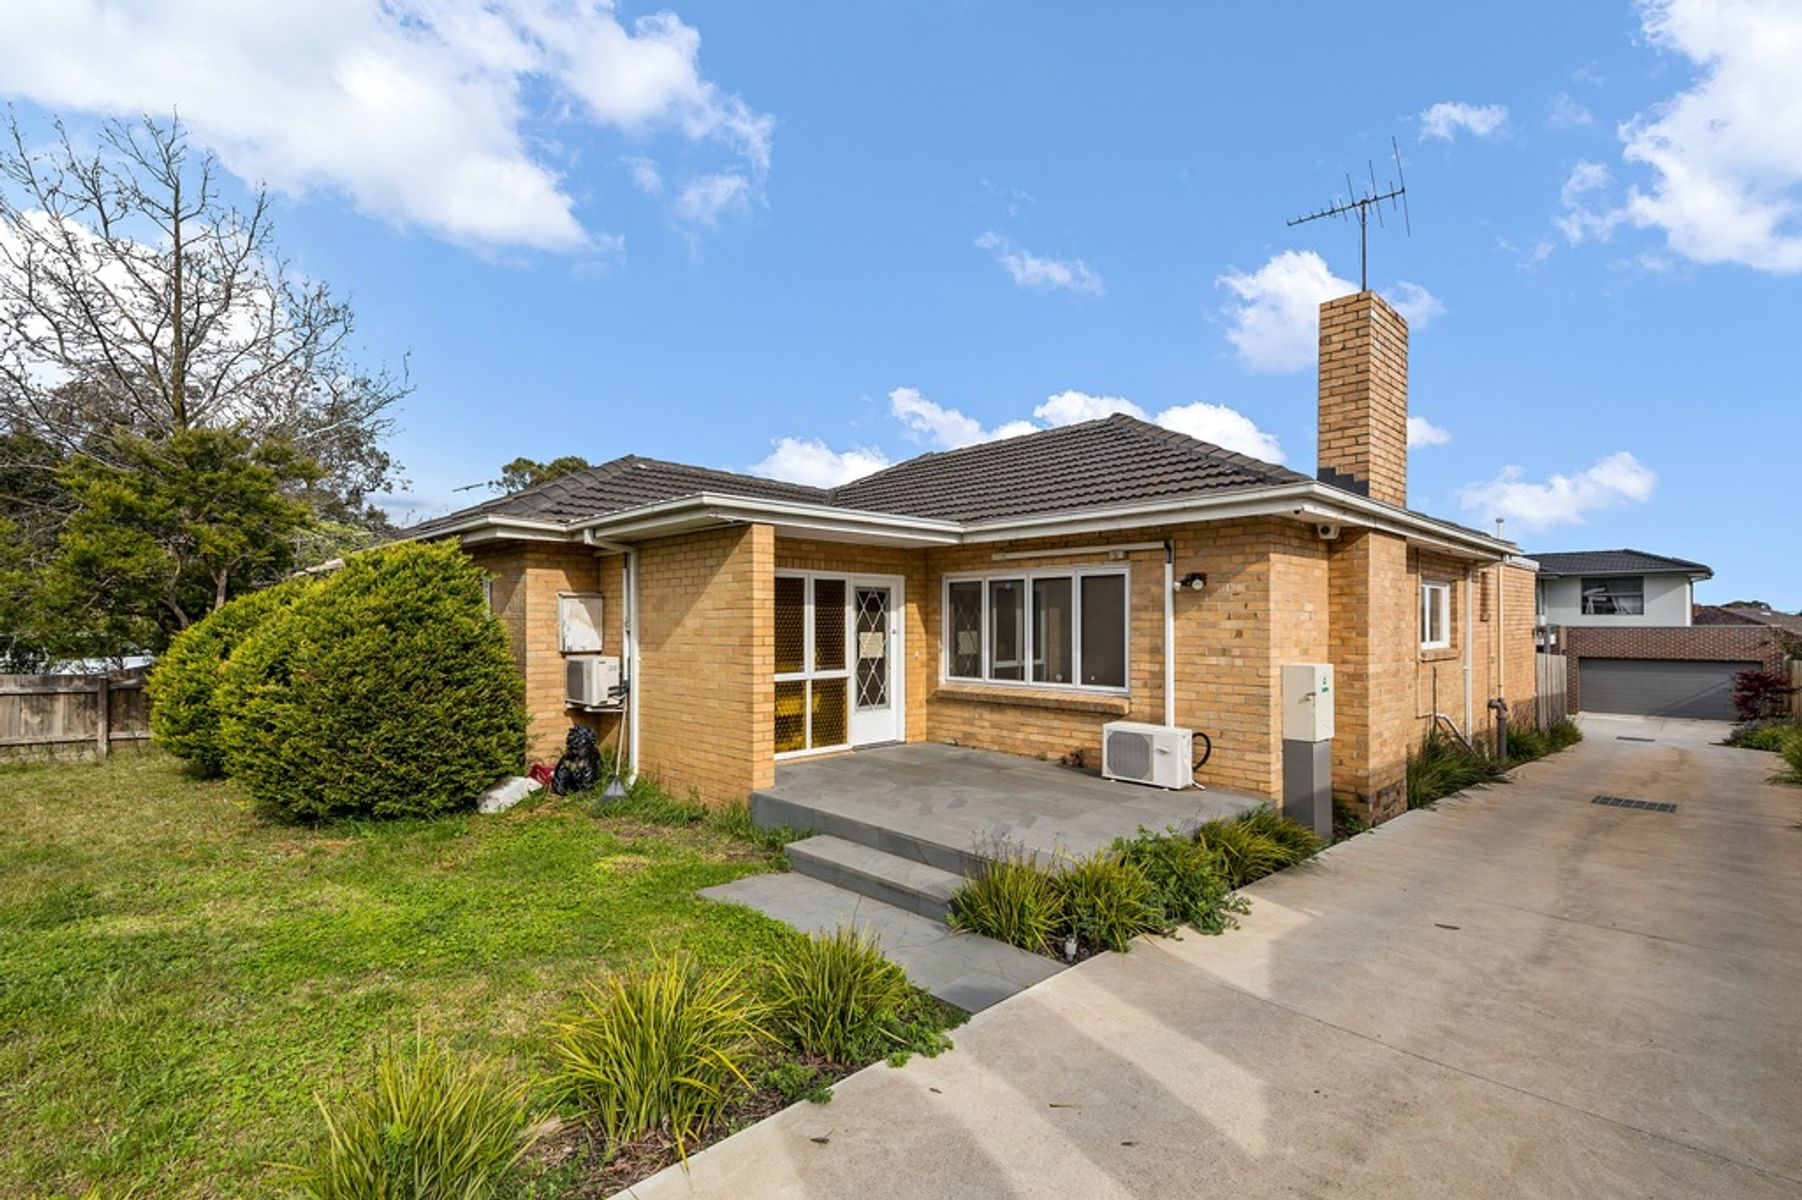 8 Adelaide Avenue, Mount Waverley, VIC 3149